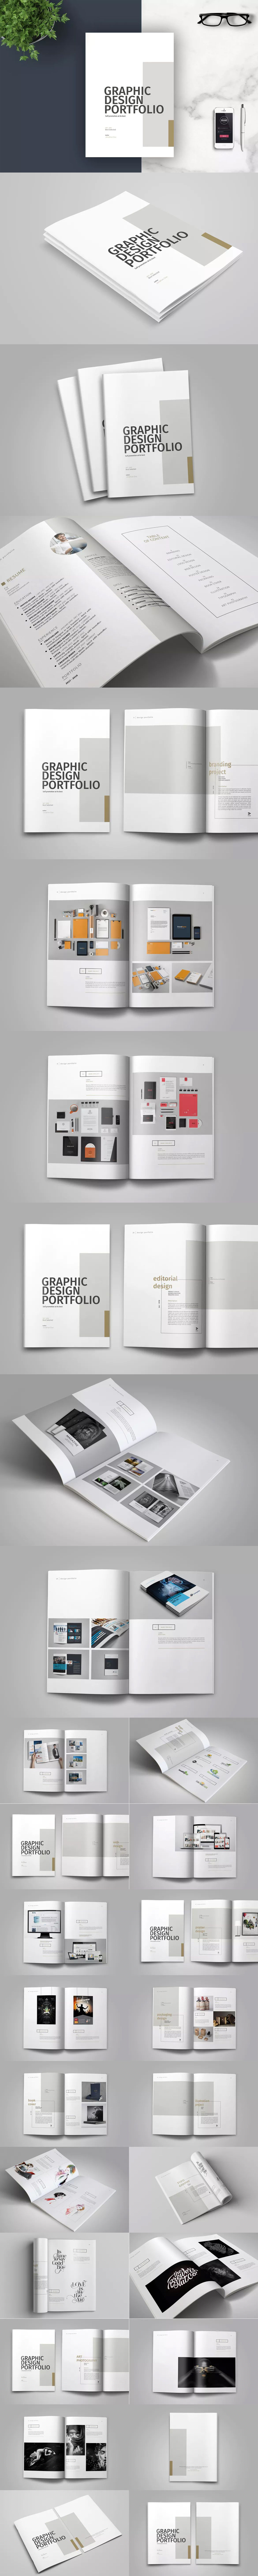 Graphic Design Portfolio Template InDesign INDD - A4 and US Letter ...